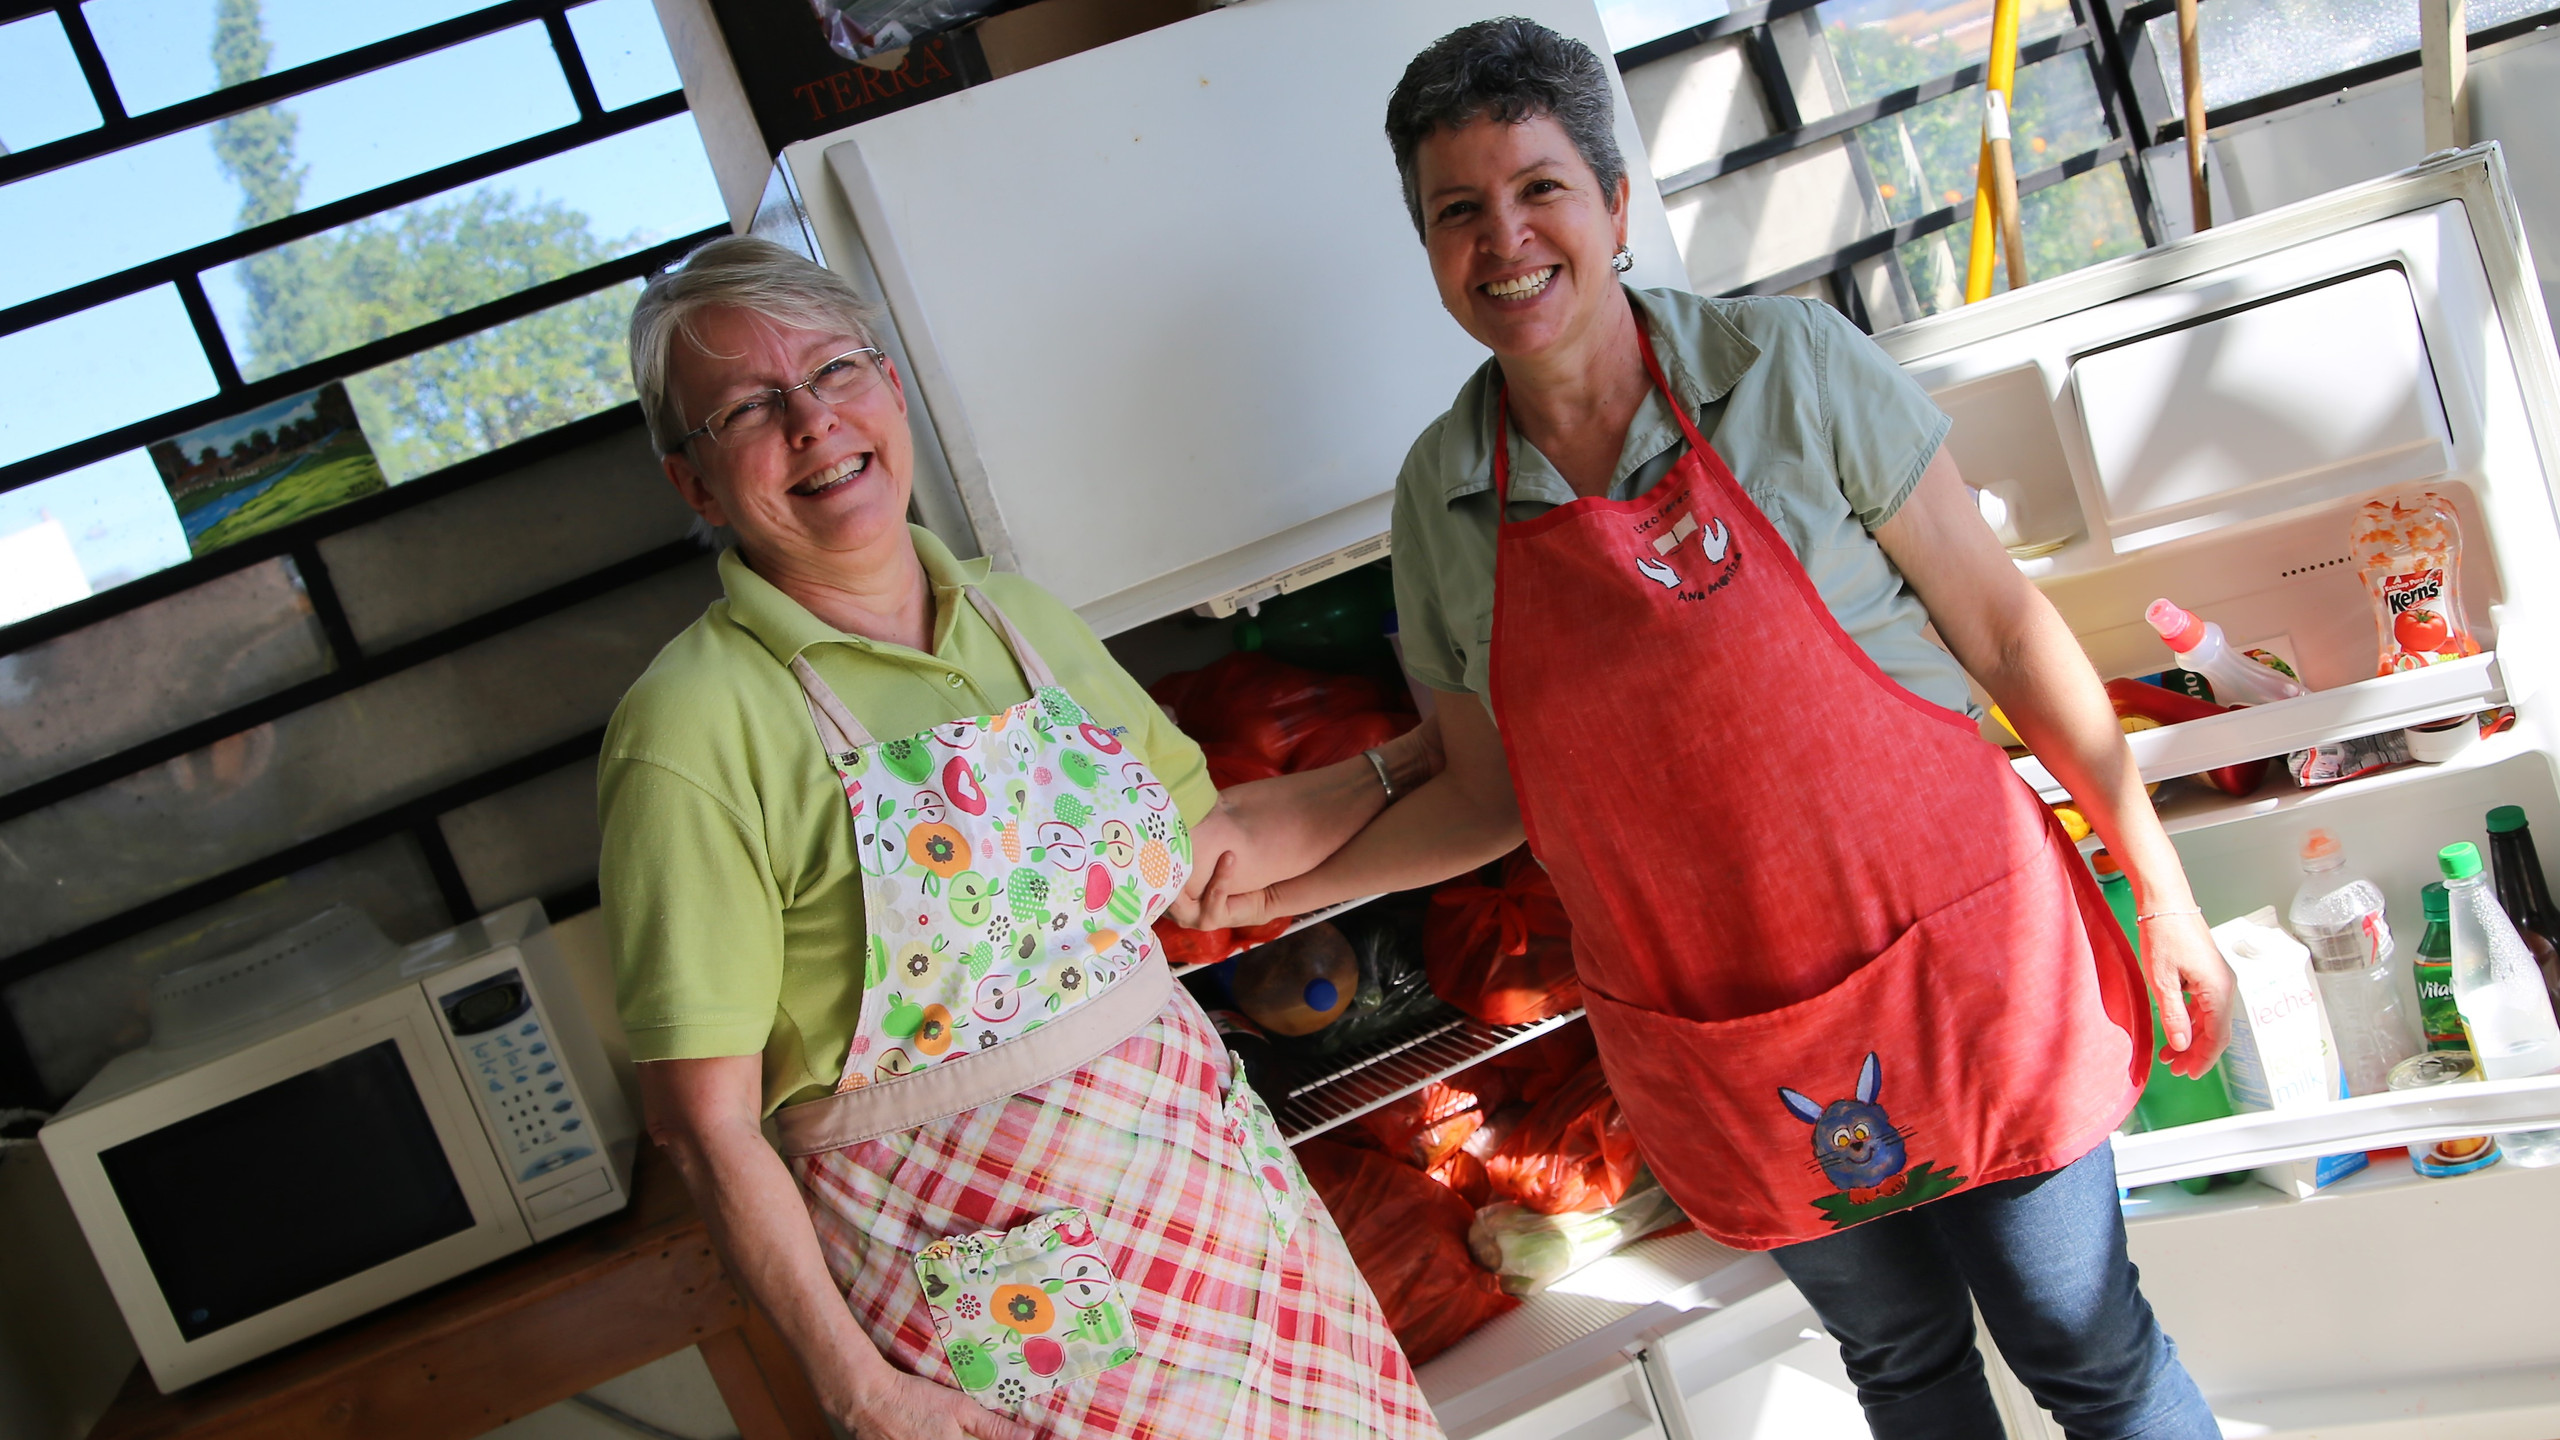 Kitchen crew (our heroes!) Debby and Elsa (yes, I know the refrigerator is open!)